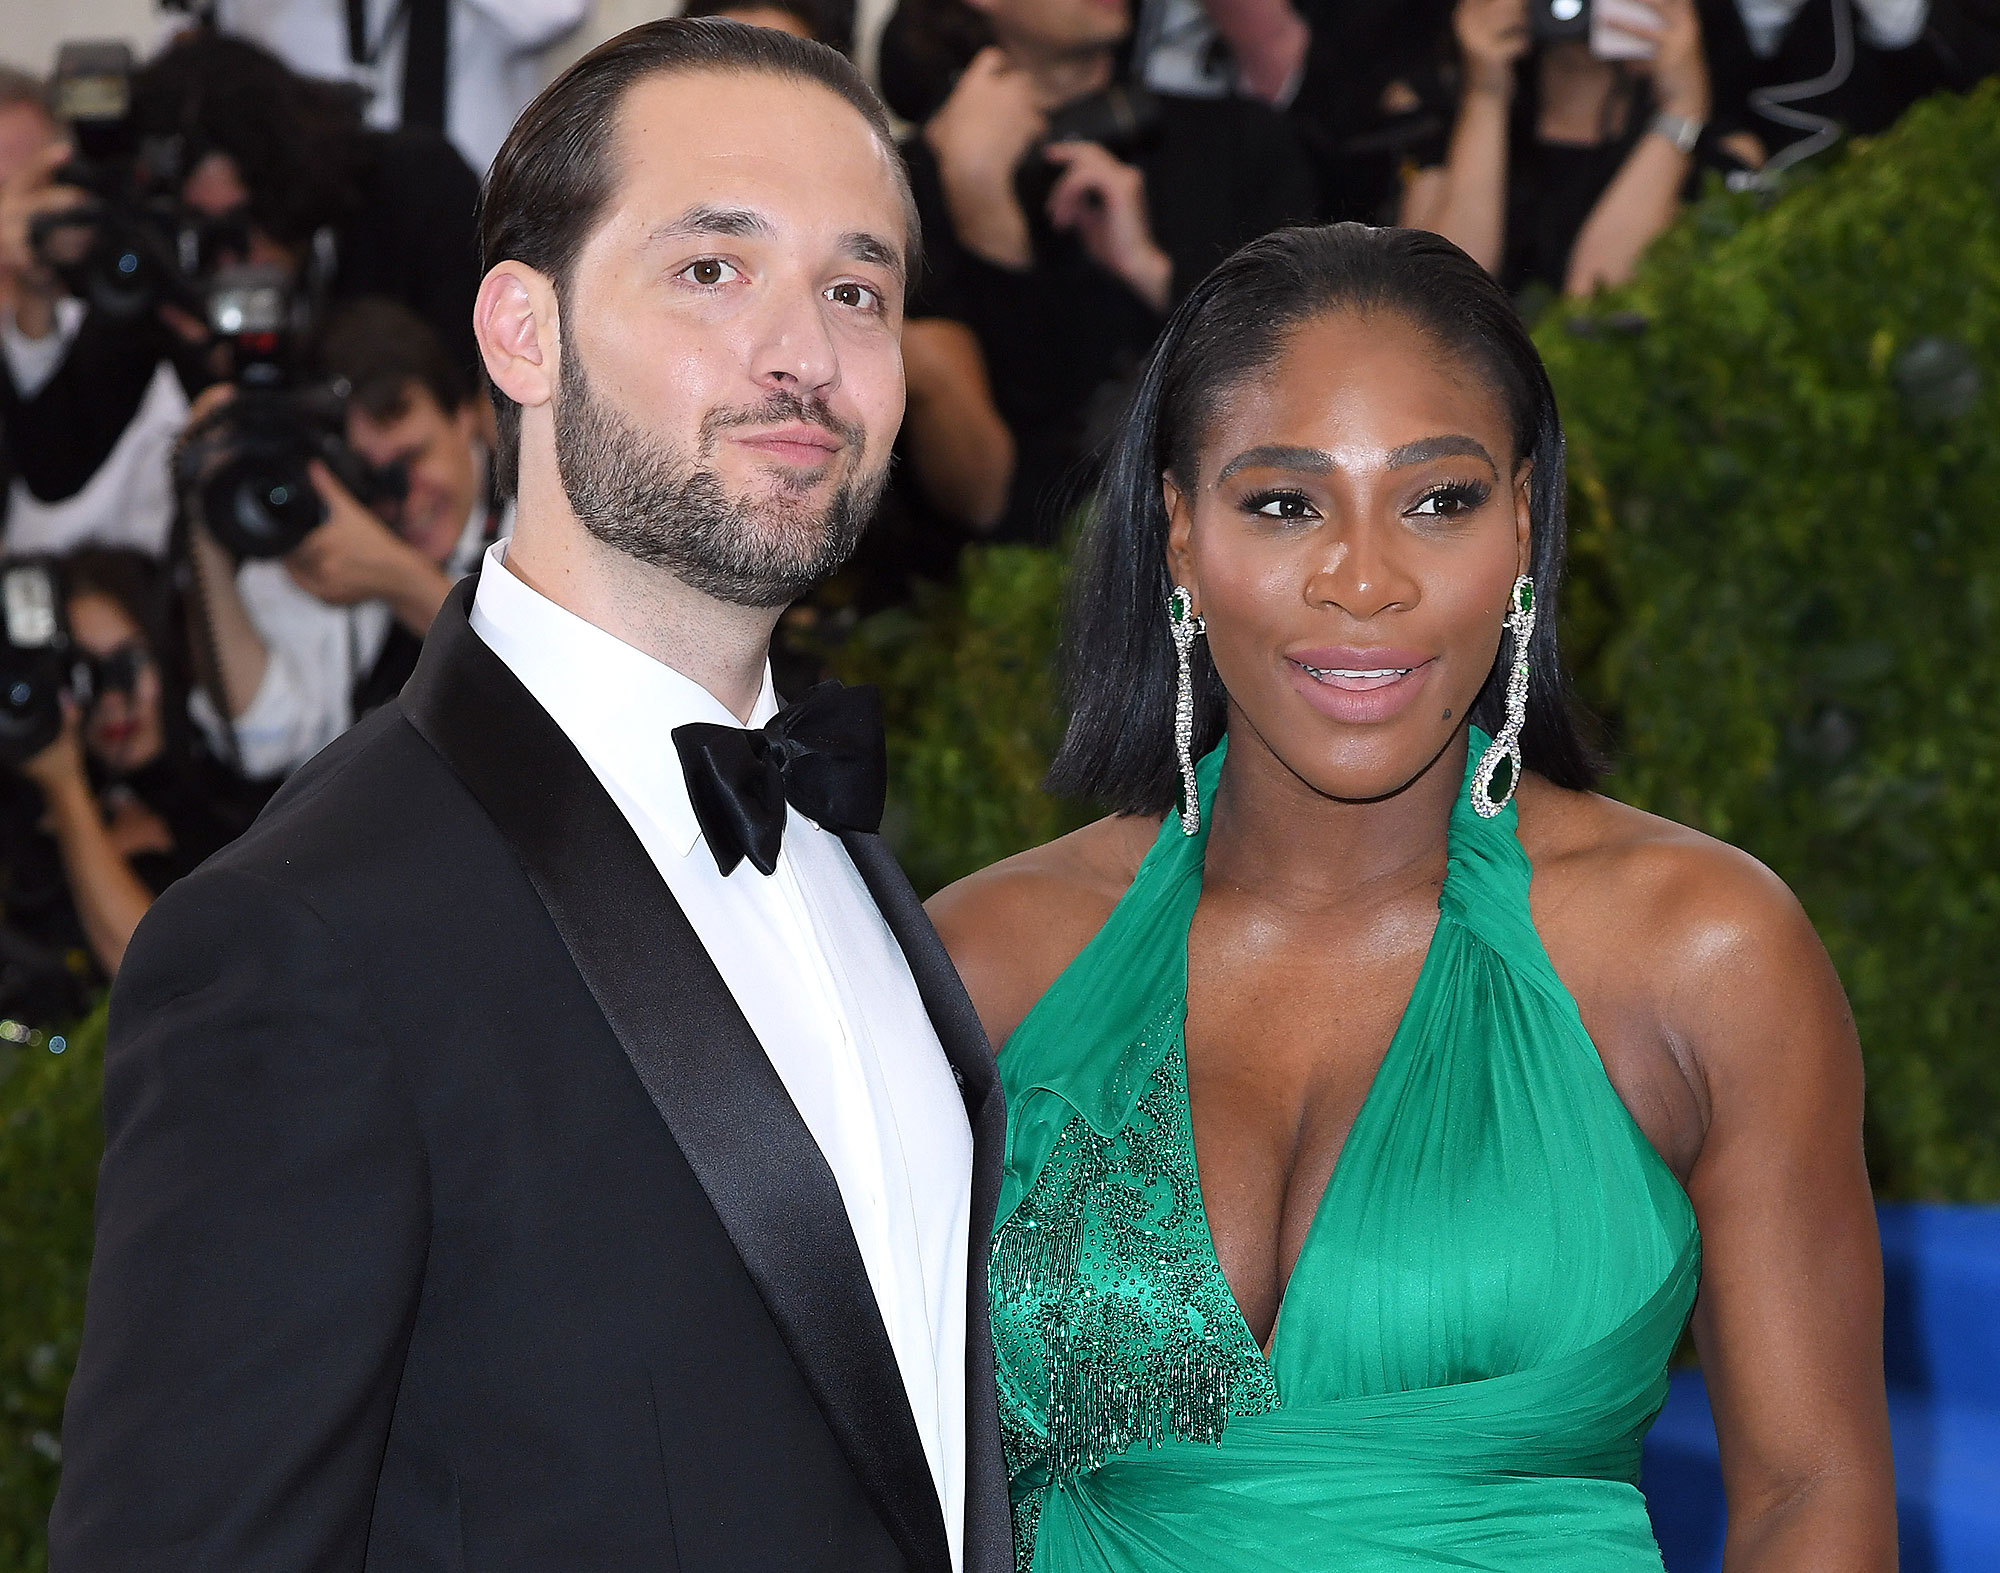 Serena Williams Royal Wedding.Serena Williams Will Be The Guest Of The Royal Wedding Wirewag